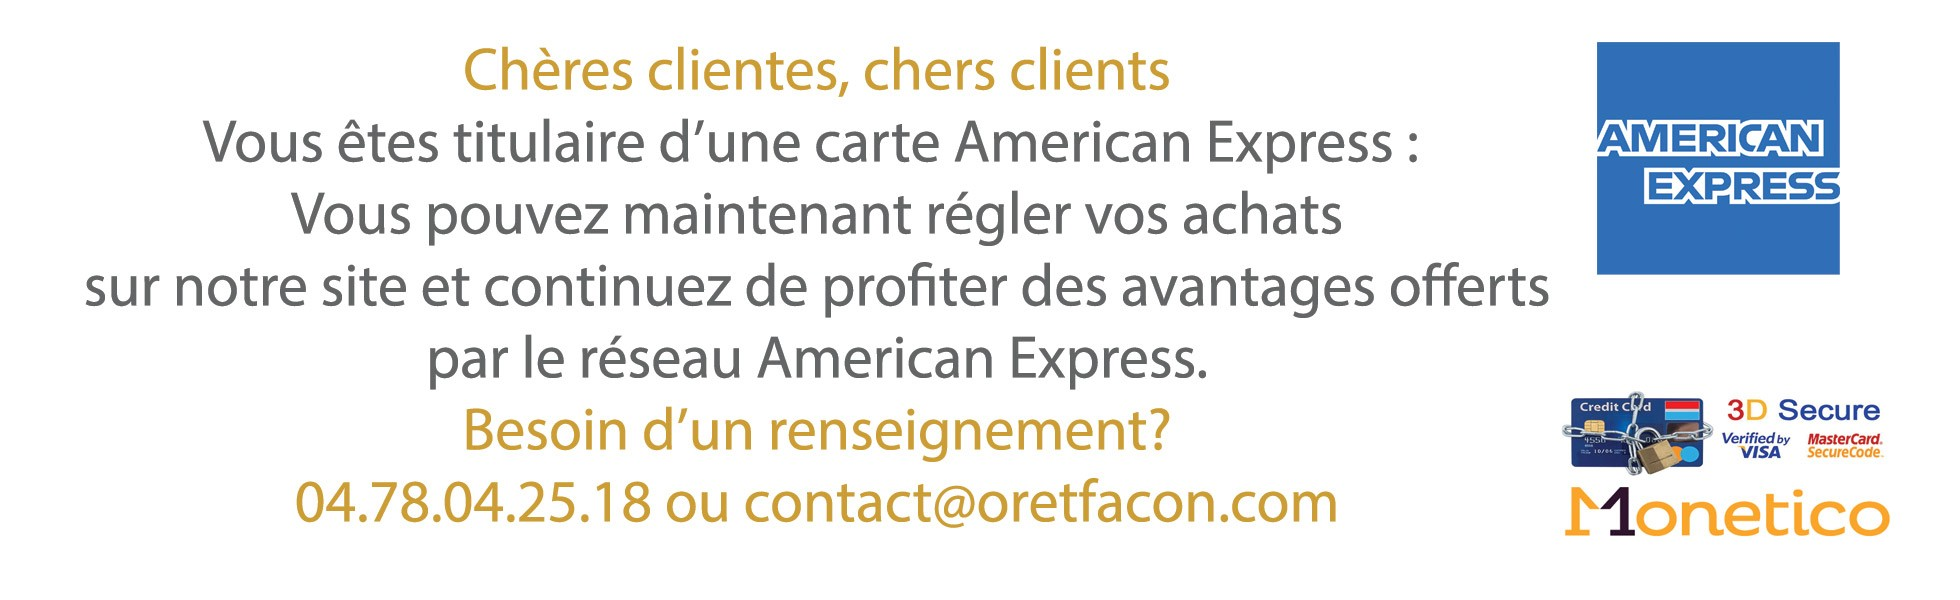 American express Or et façon